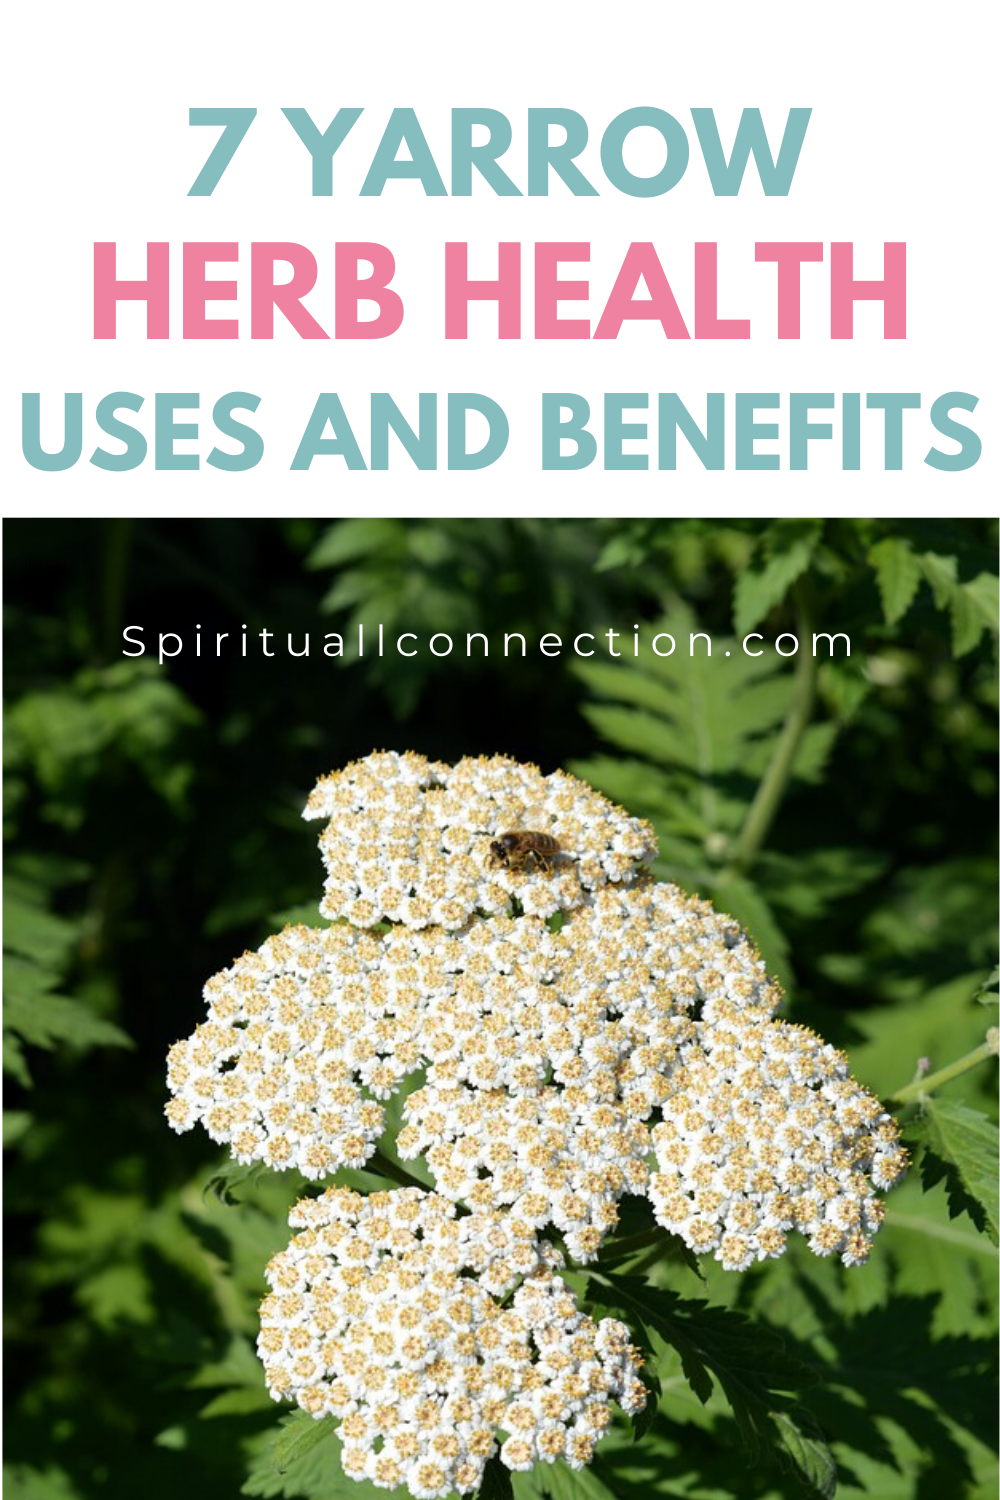 7 Yarrow Health Uses And Benefits In 2020 Natural Health Care Herbs Natural Health Tips